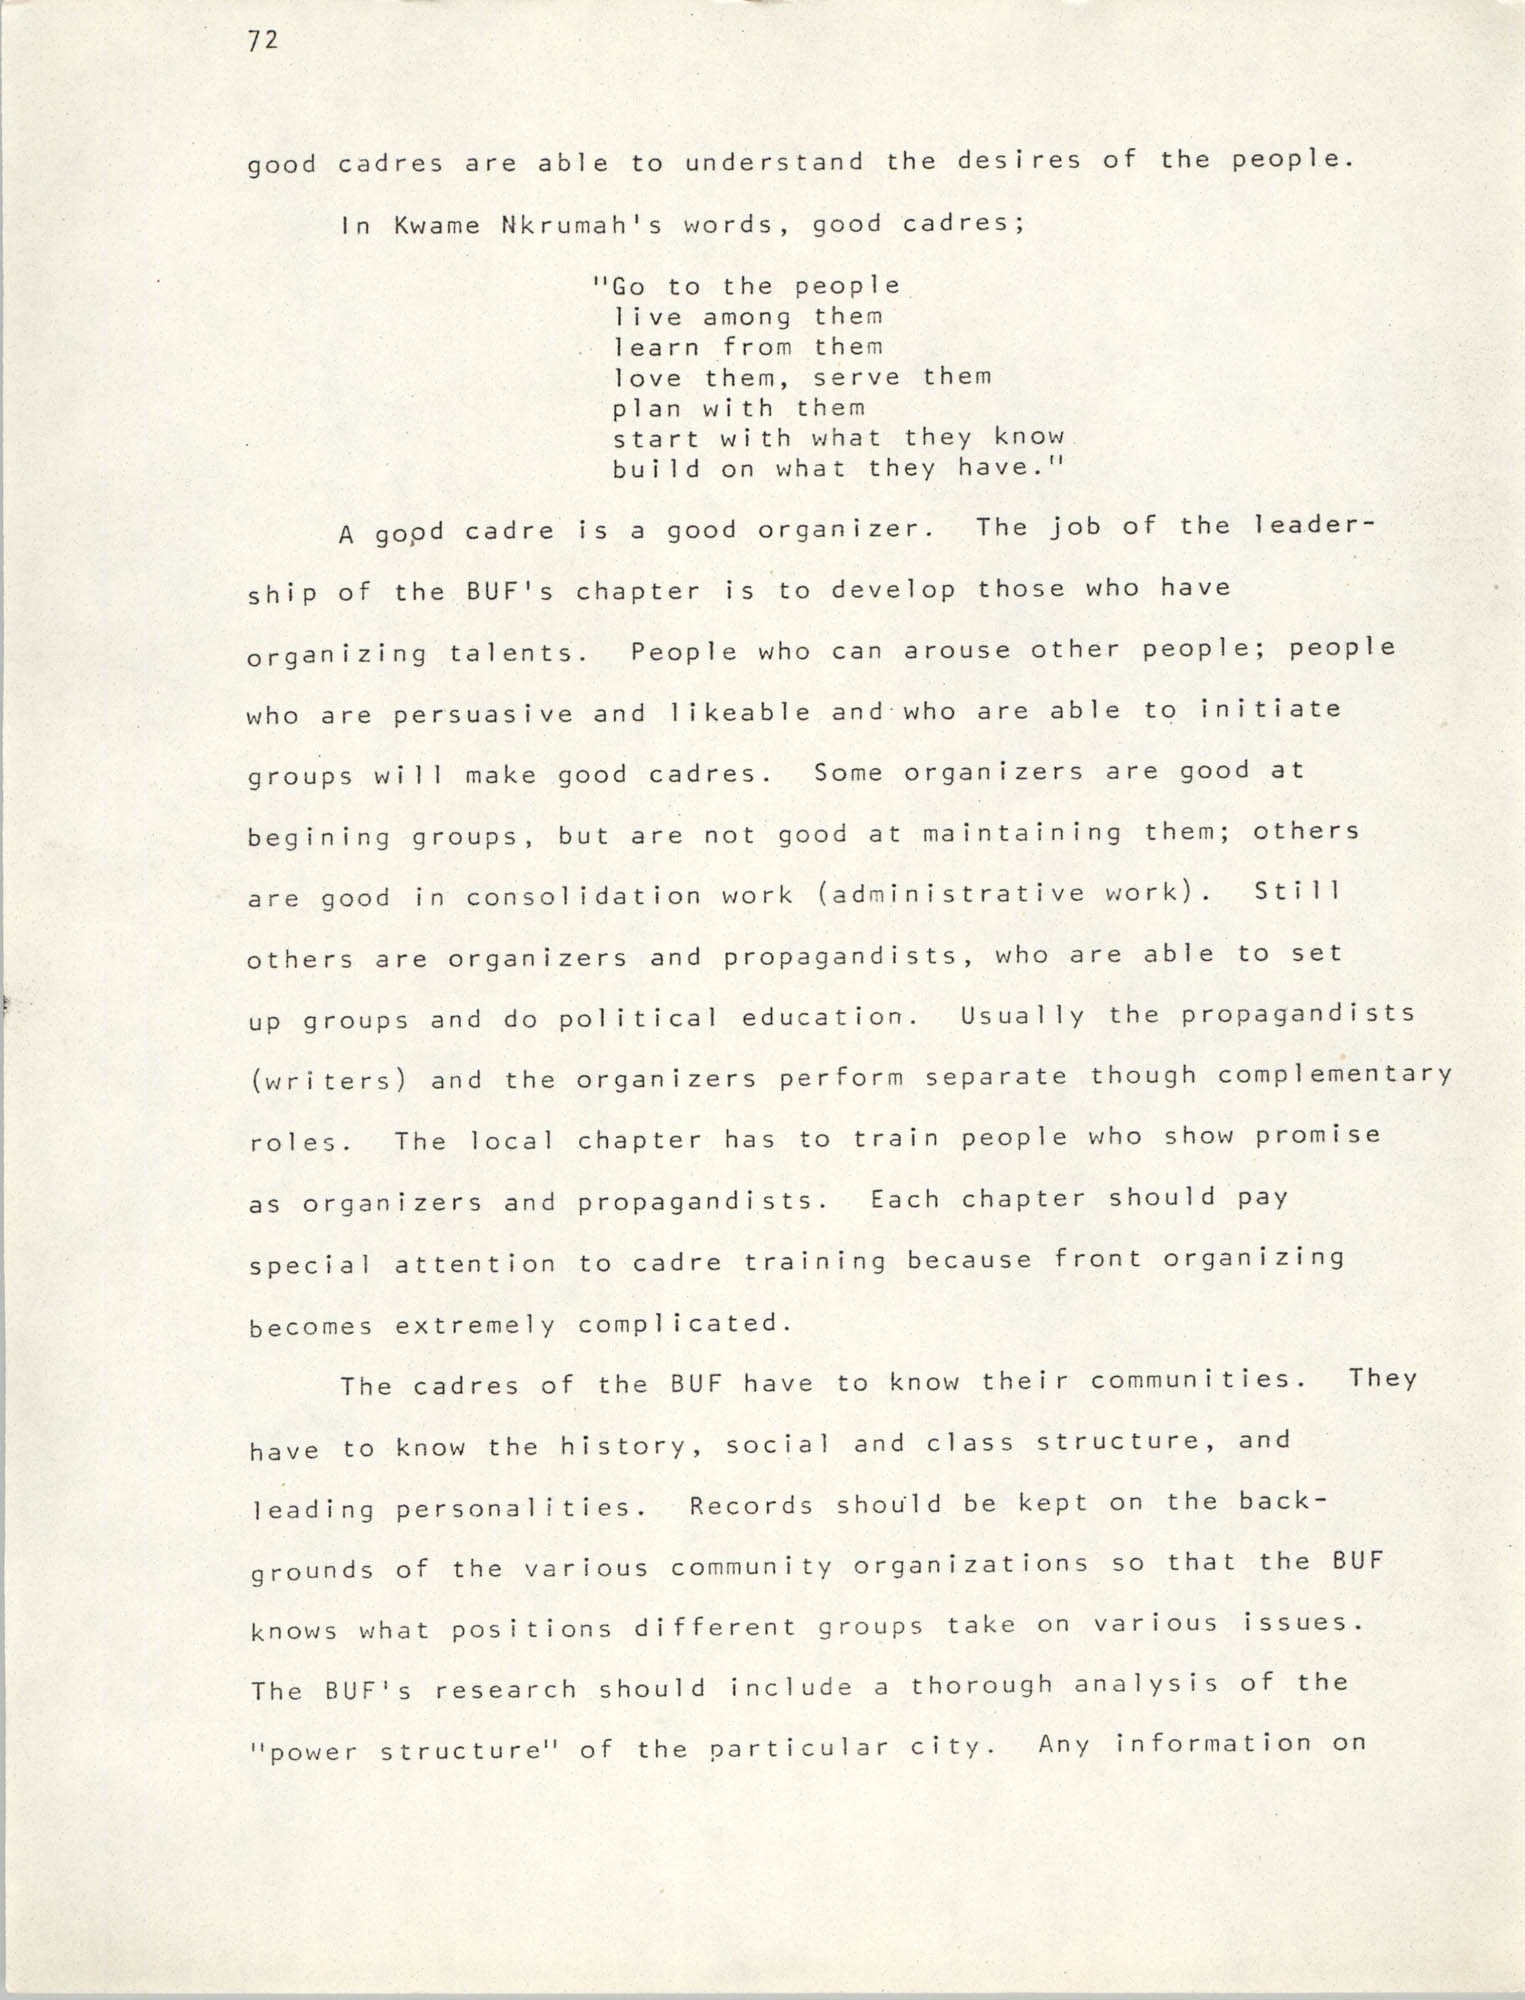 Pan-African Committee of the Black United Front, Page 72